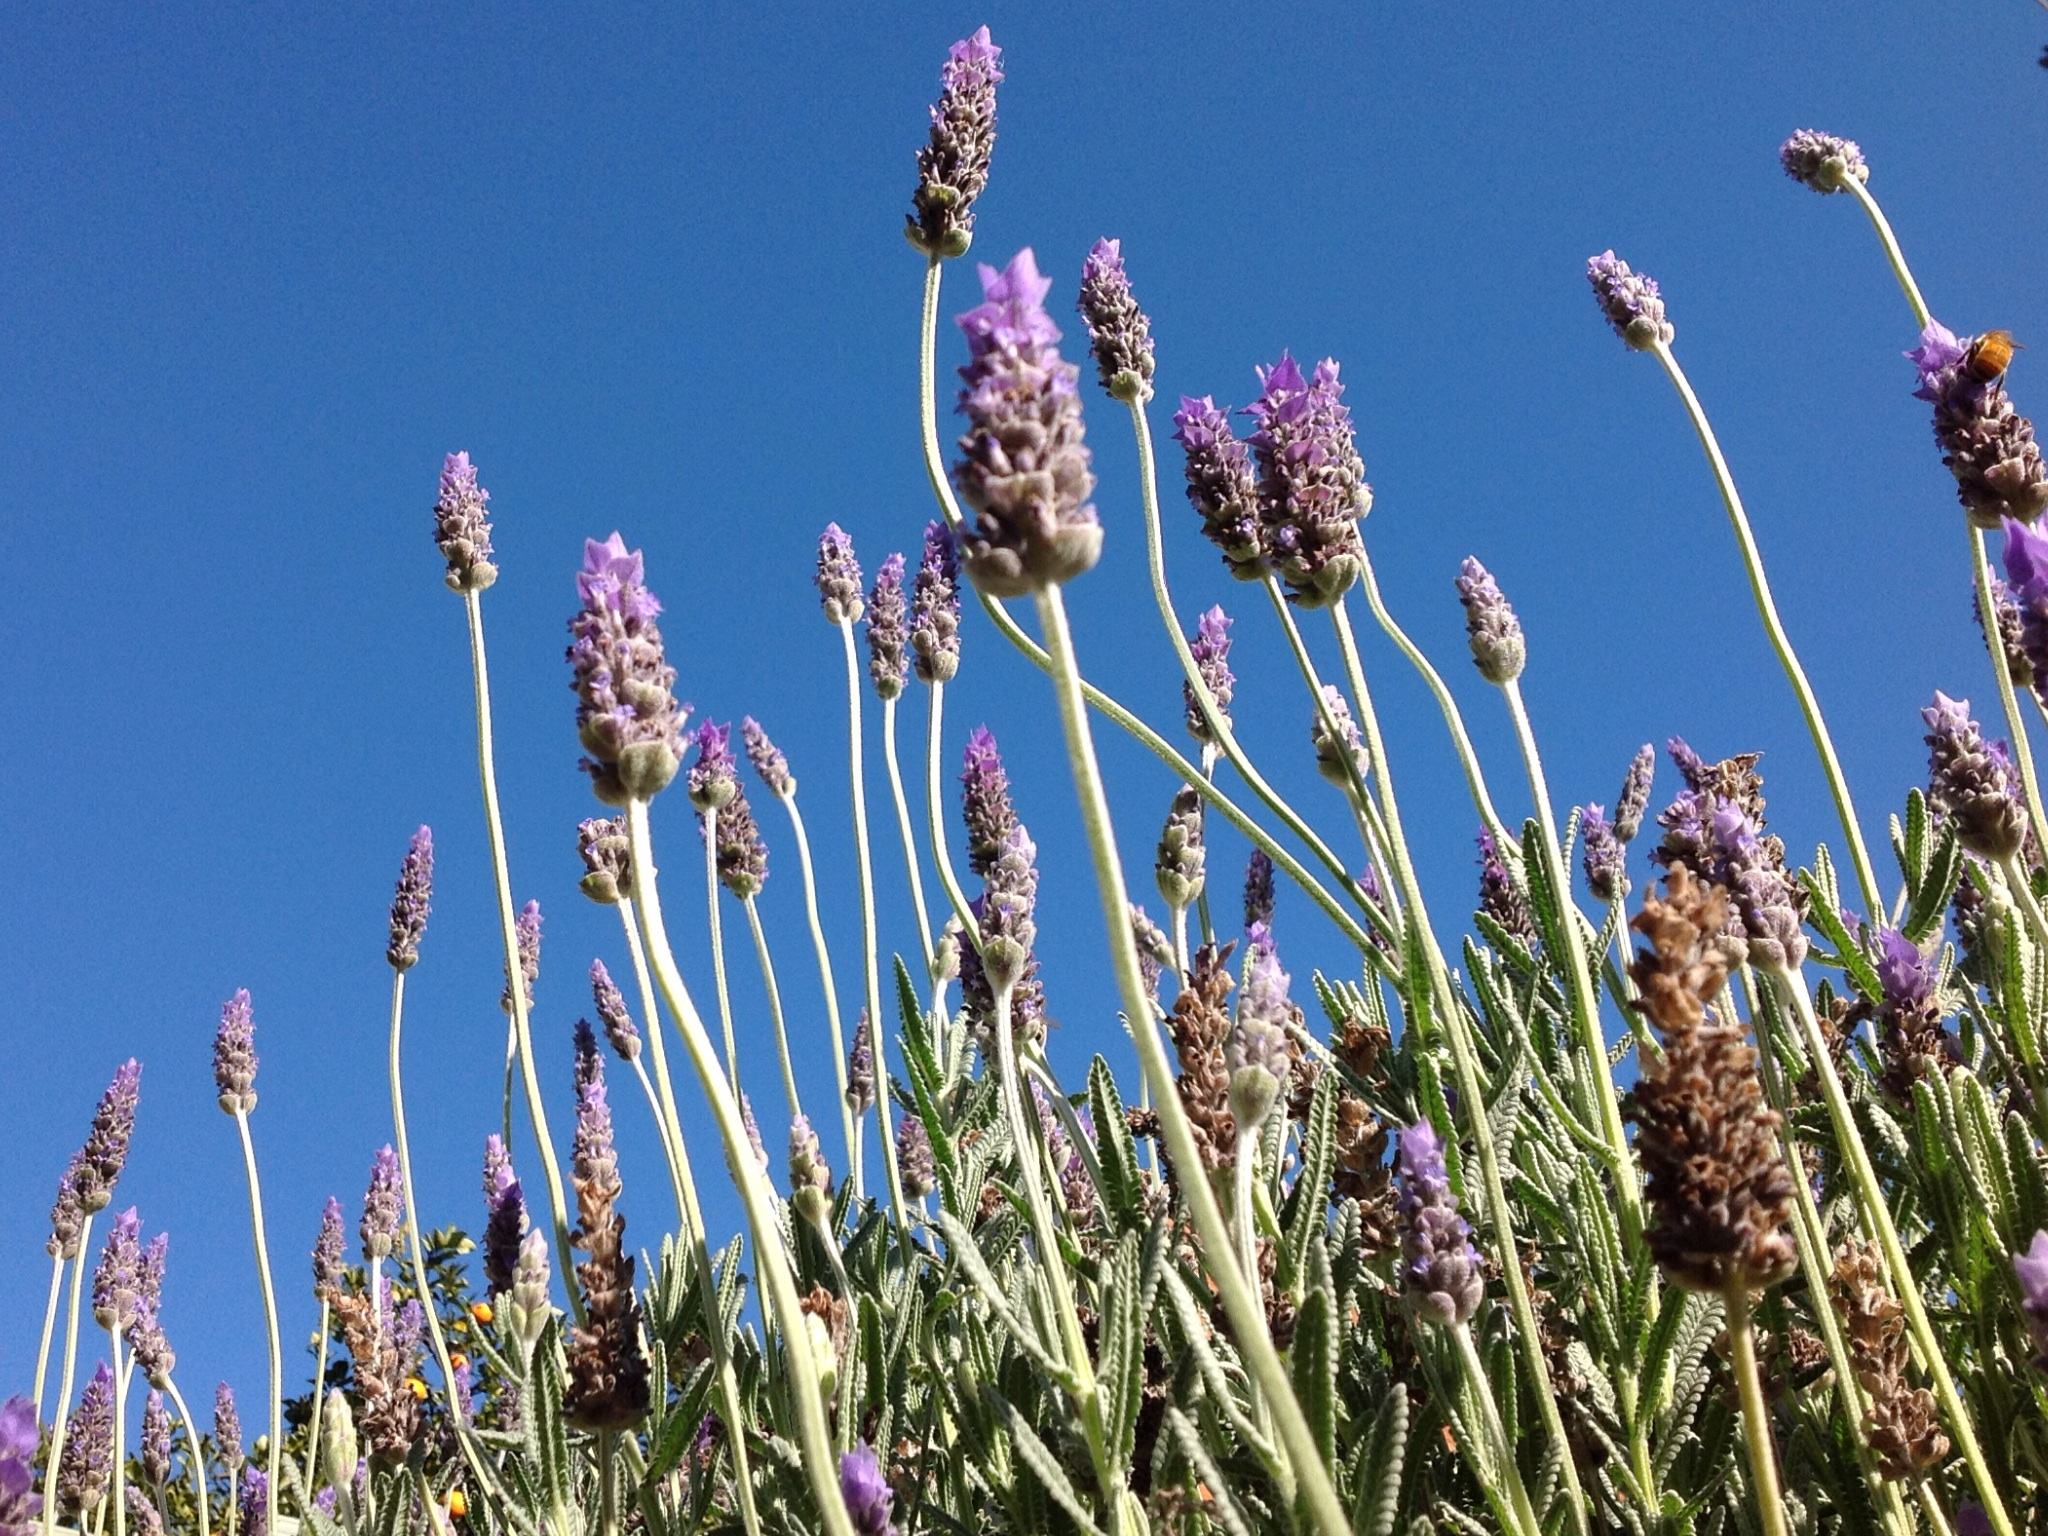 Finding beauty in the simple life, lavender hedge, find a thing of beauty every day, memories, prepare for retirement